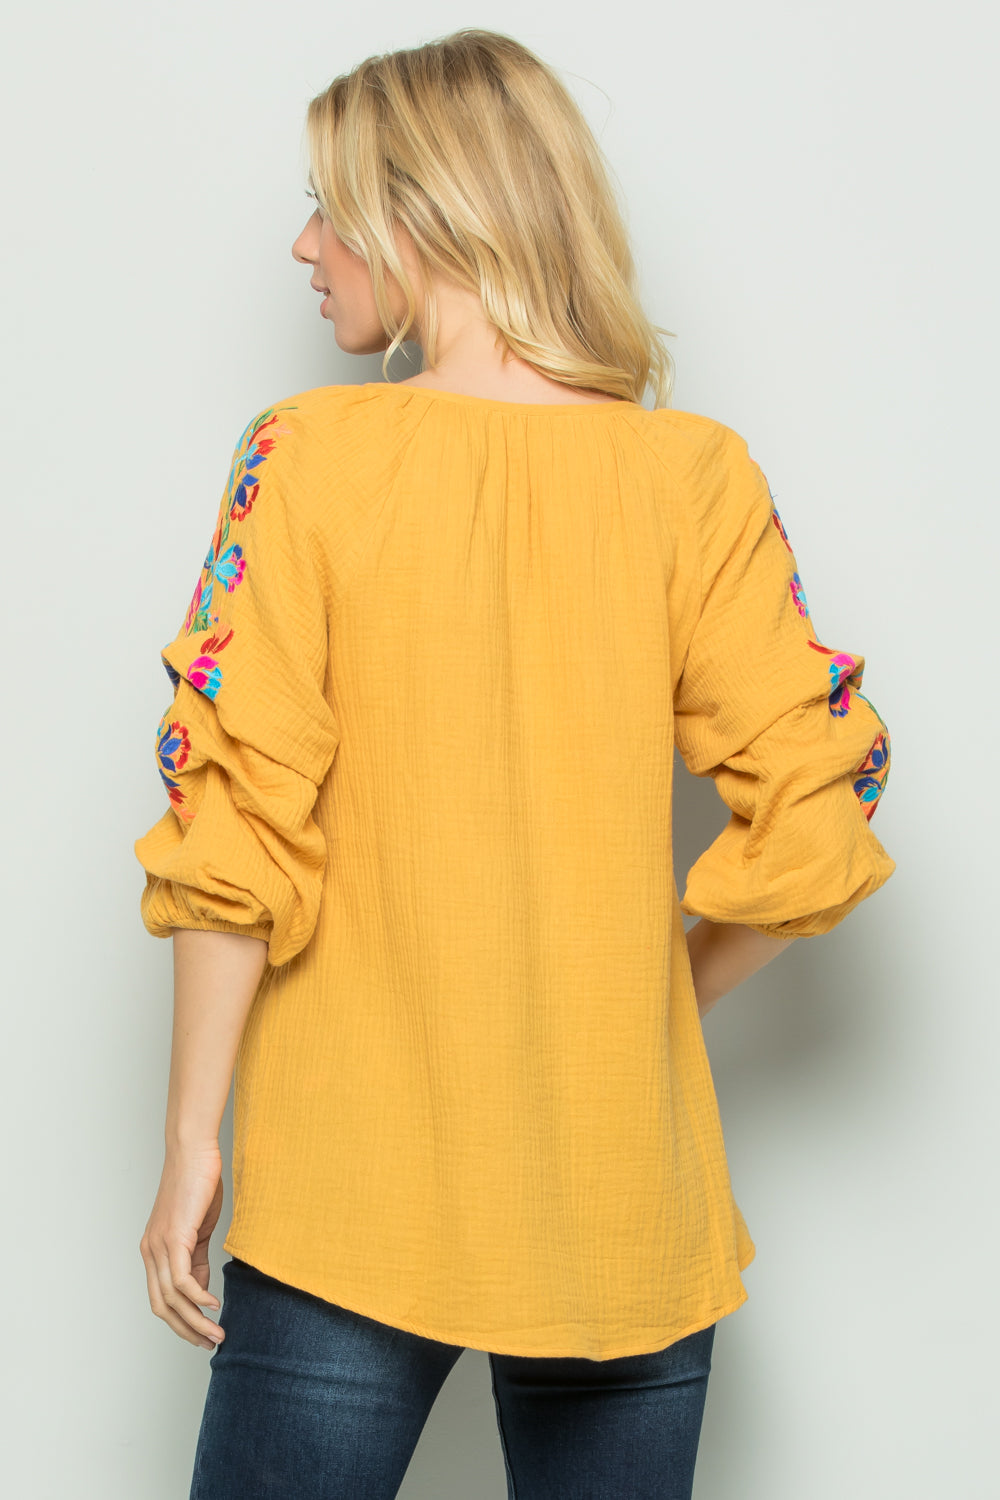 T2698 Floral Embroidery Top - YELLOW